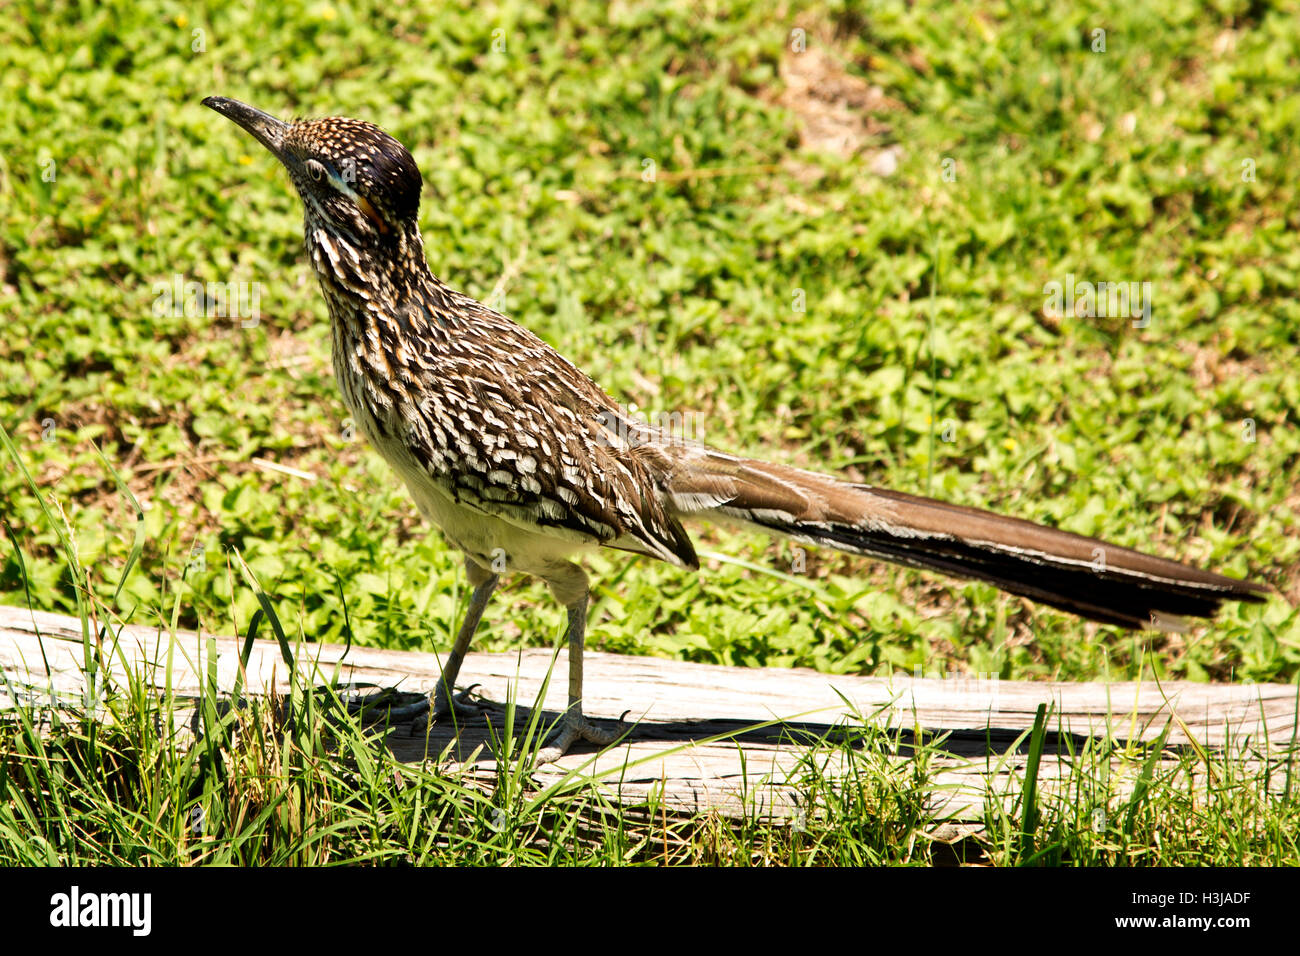 Young roadrunner - Stock Image